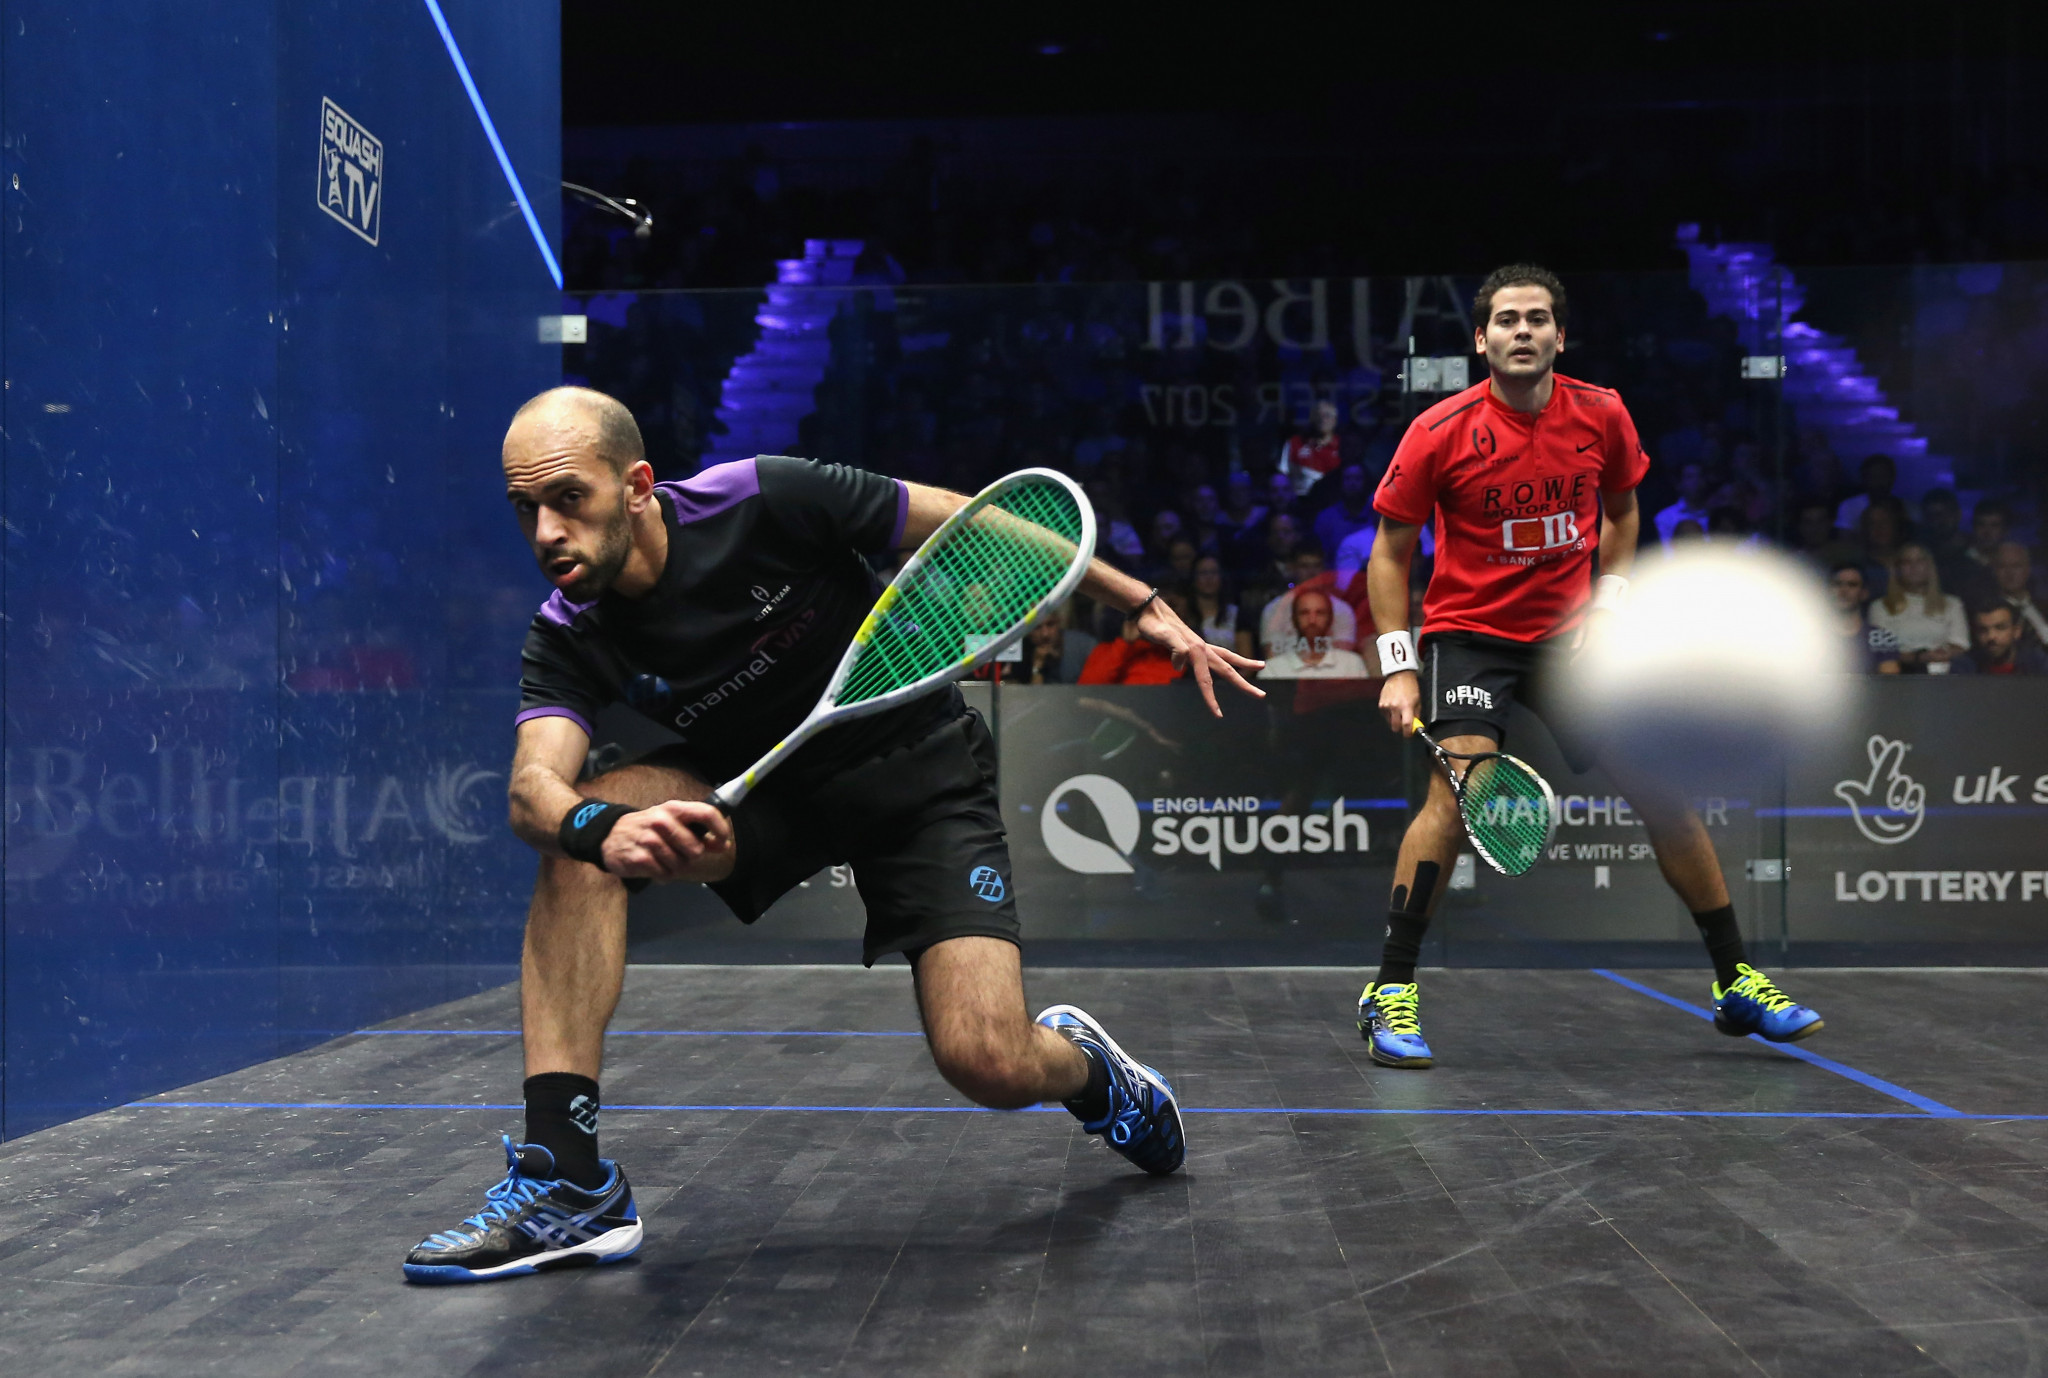 World Squash Day celebrated on 20th anniversary across social media